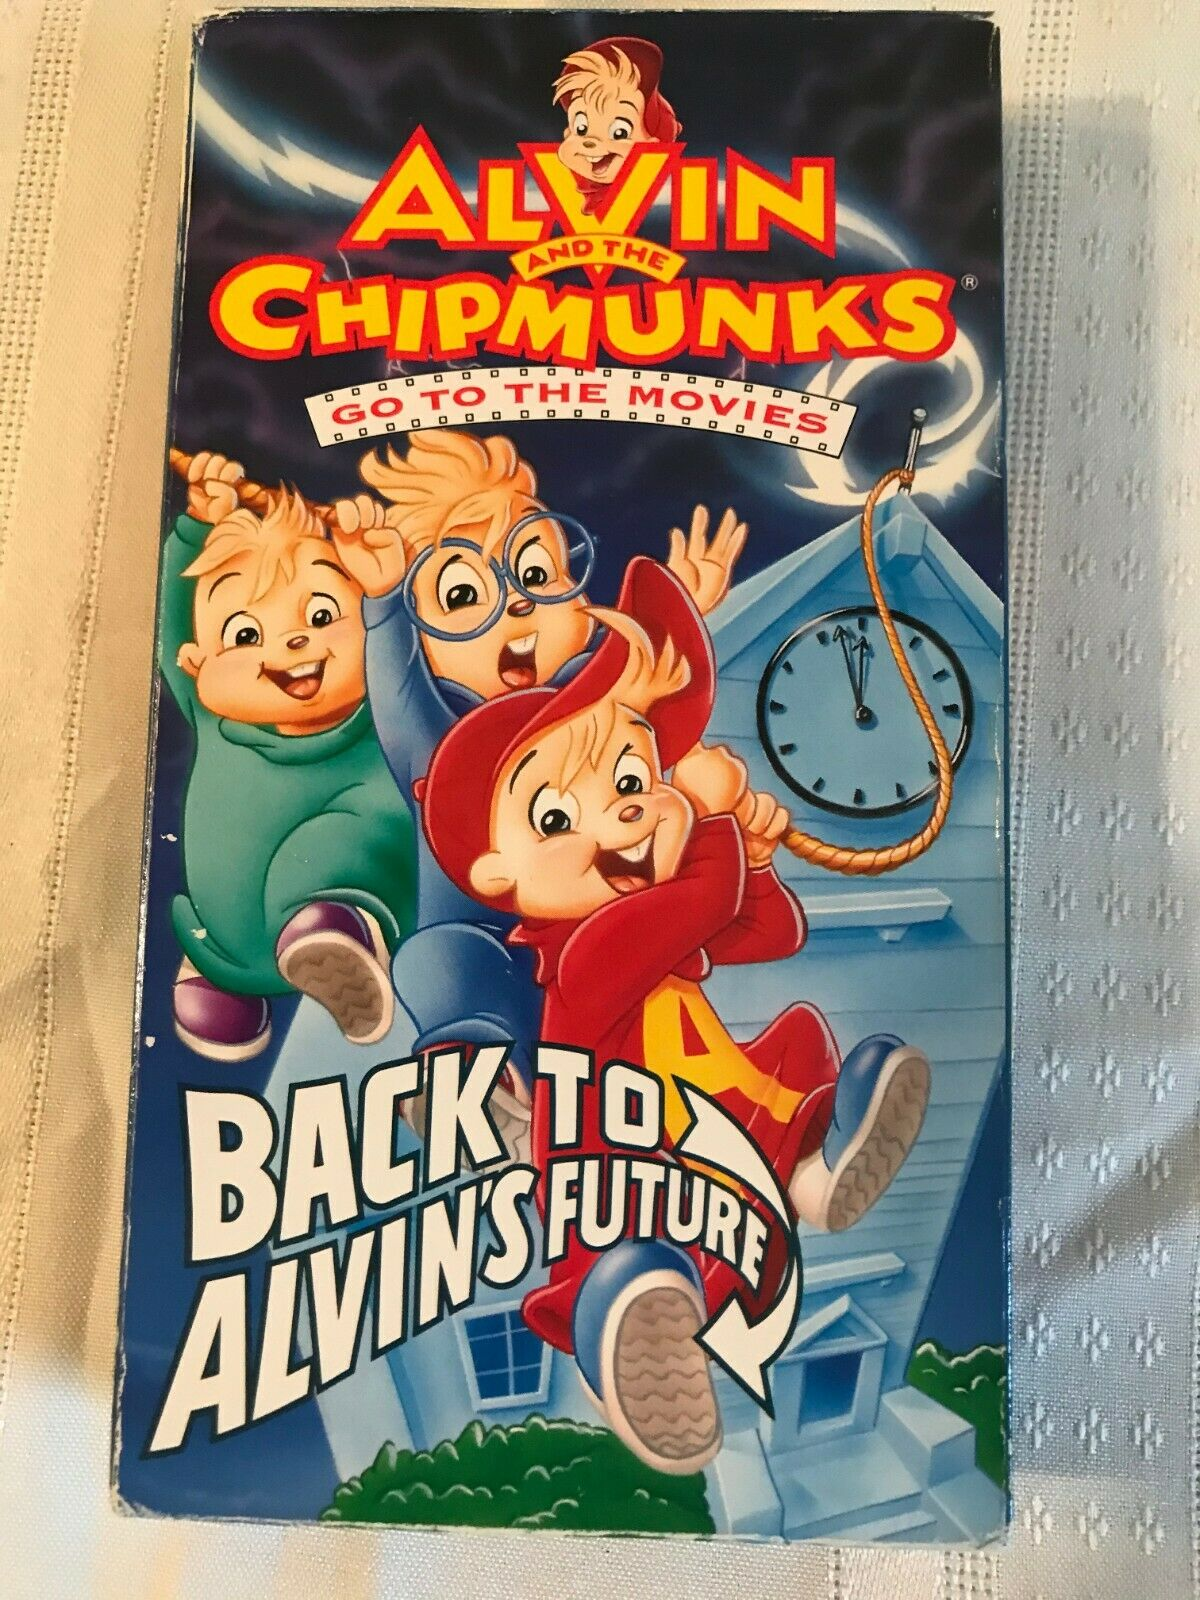 Alvin and the Chipmunks Go to the Movies: Back to Alvin's Future (1992 VHS)